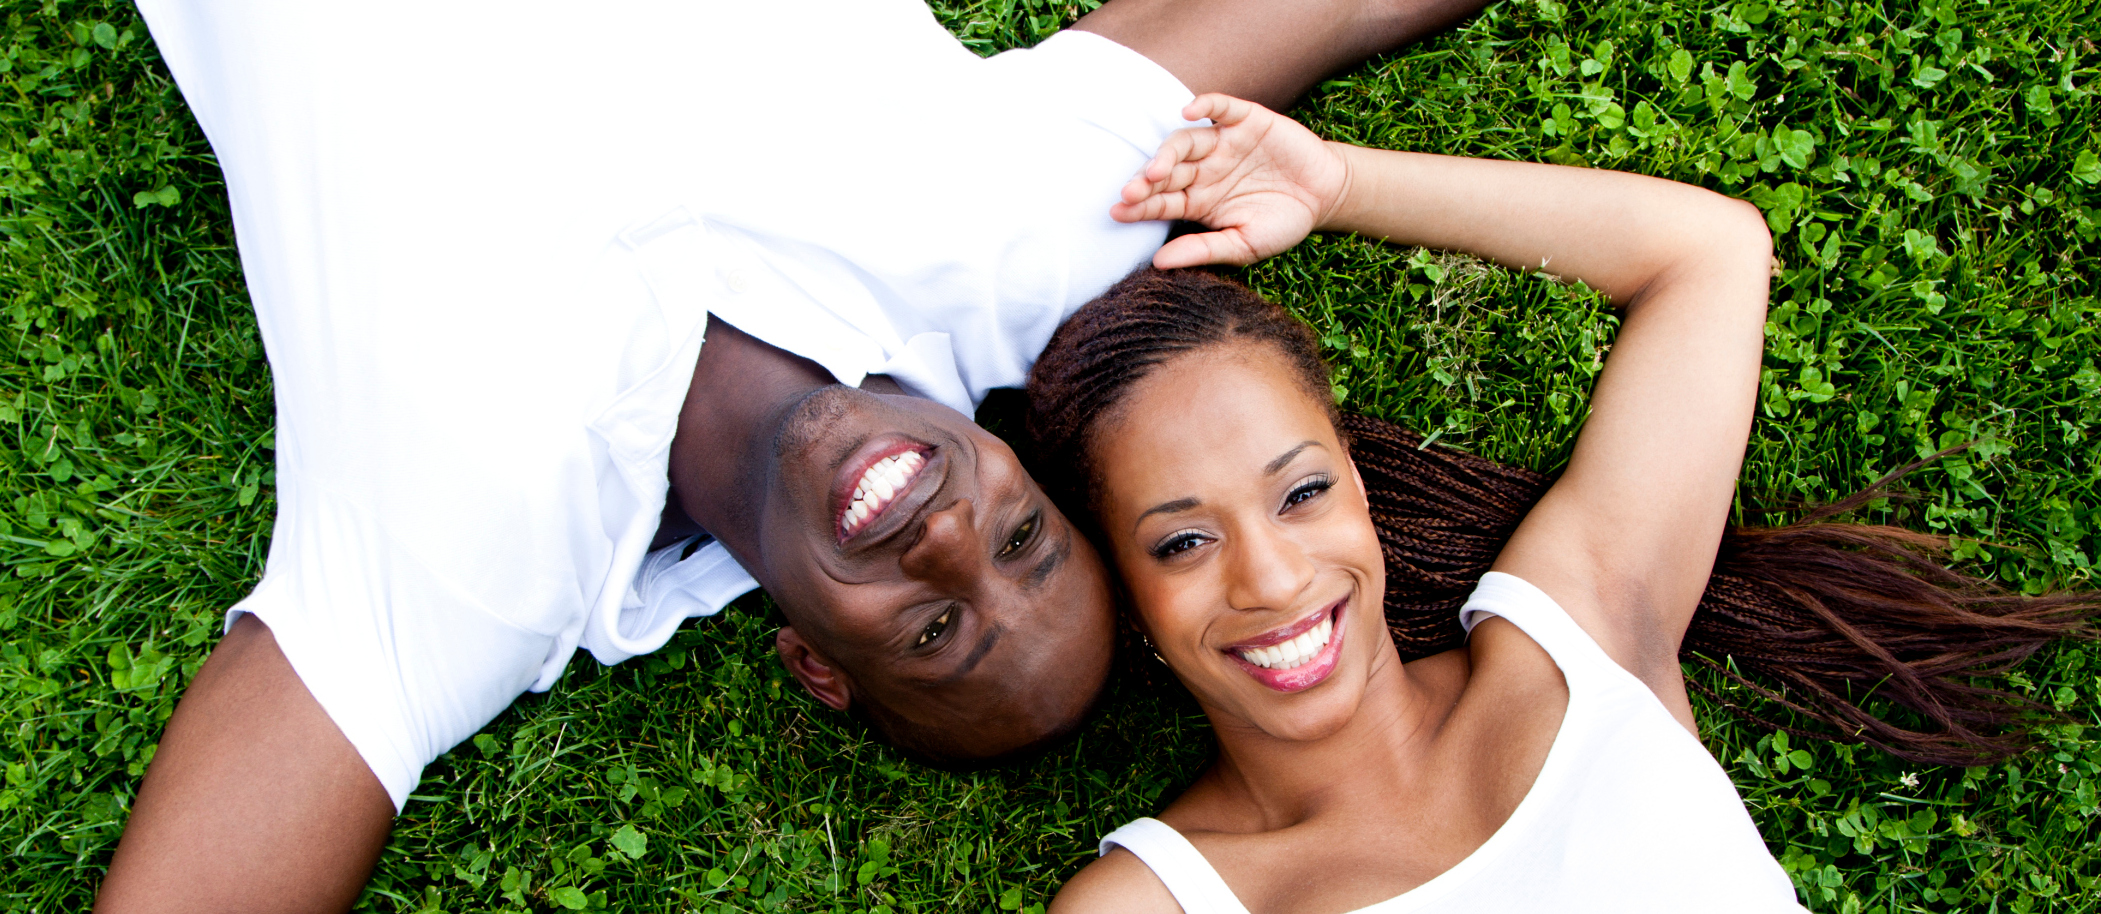 African-american dating couples images in love